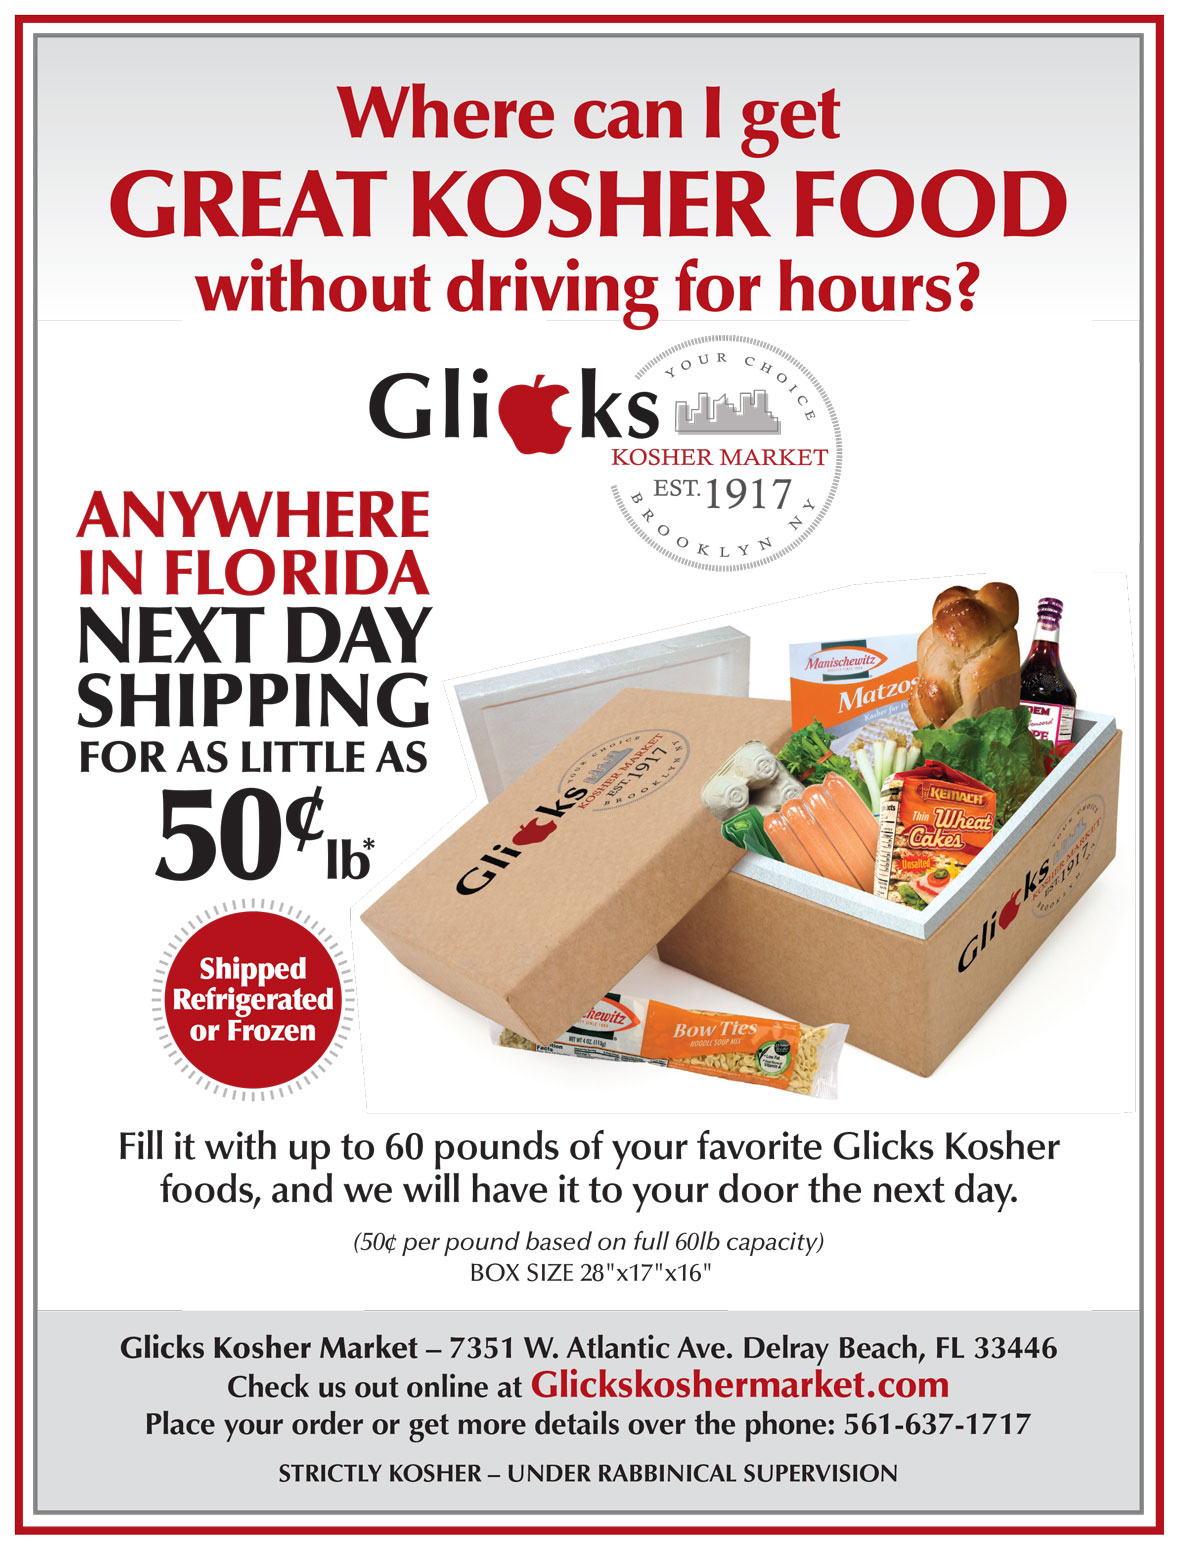 Glicks Kosher Overnight Food Delivery